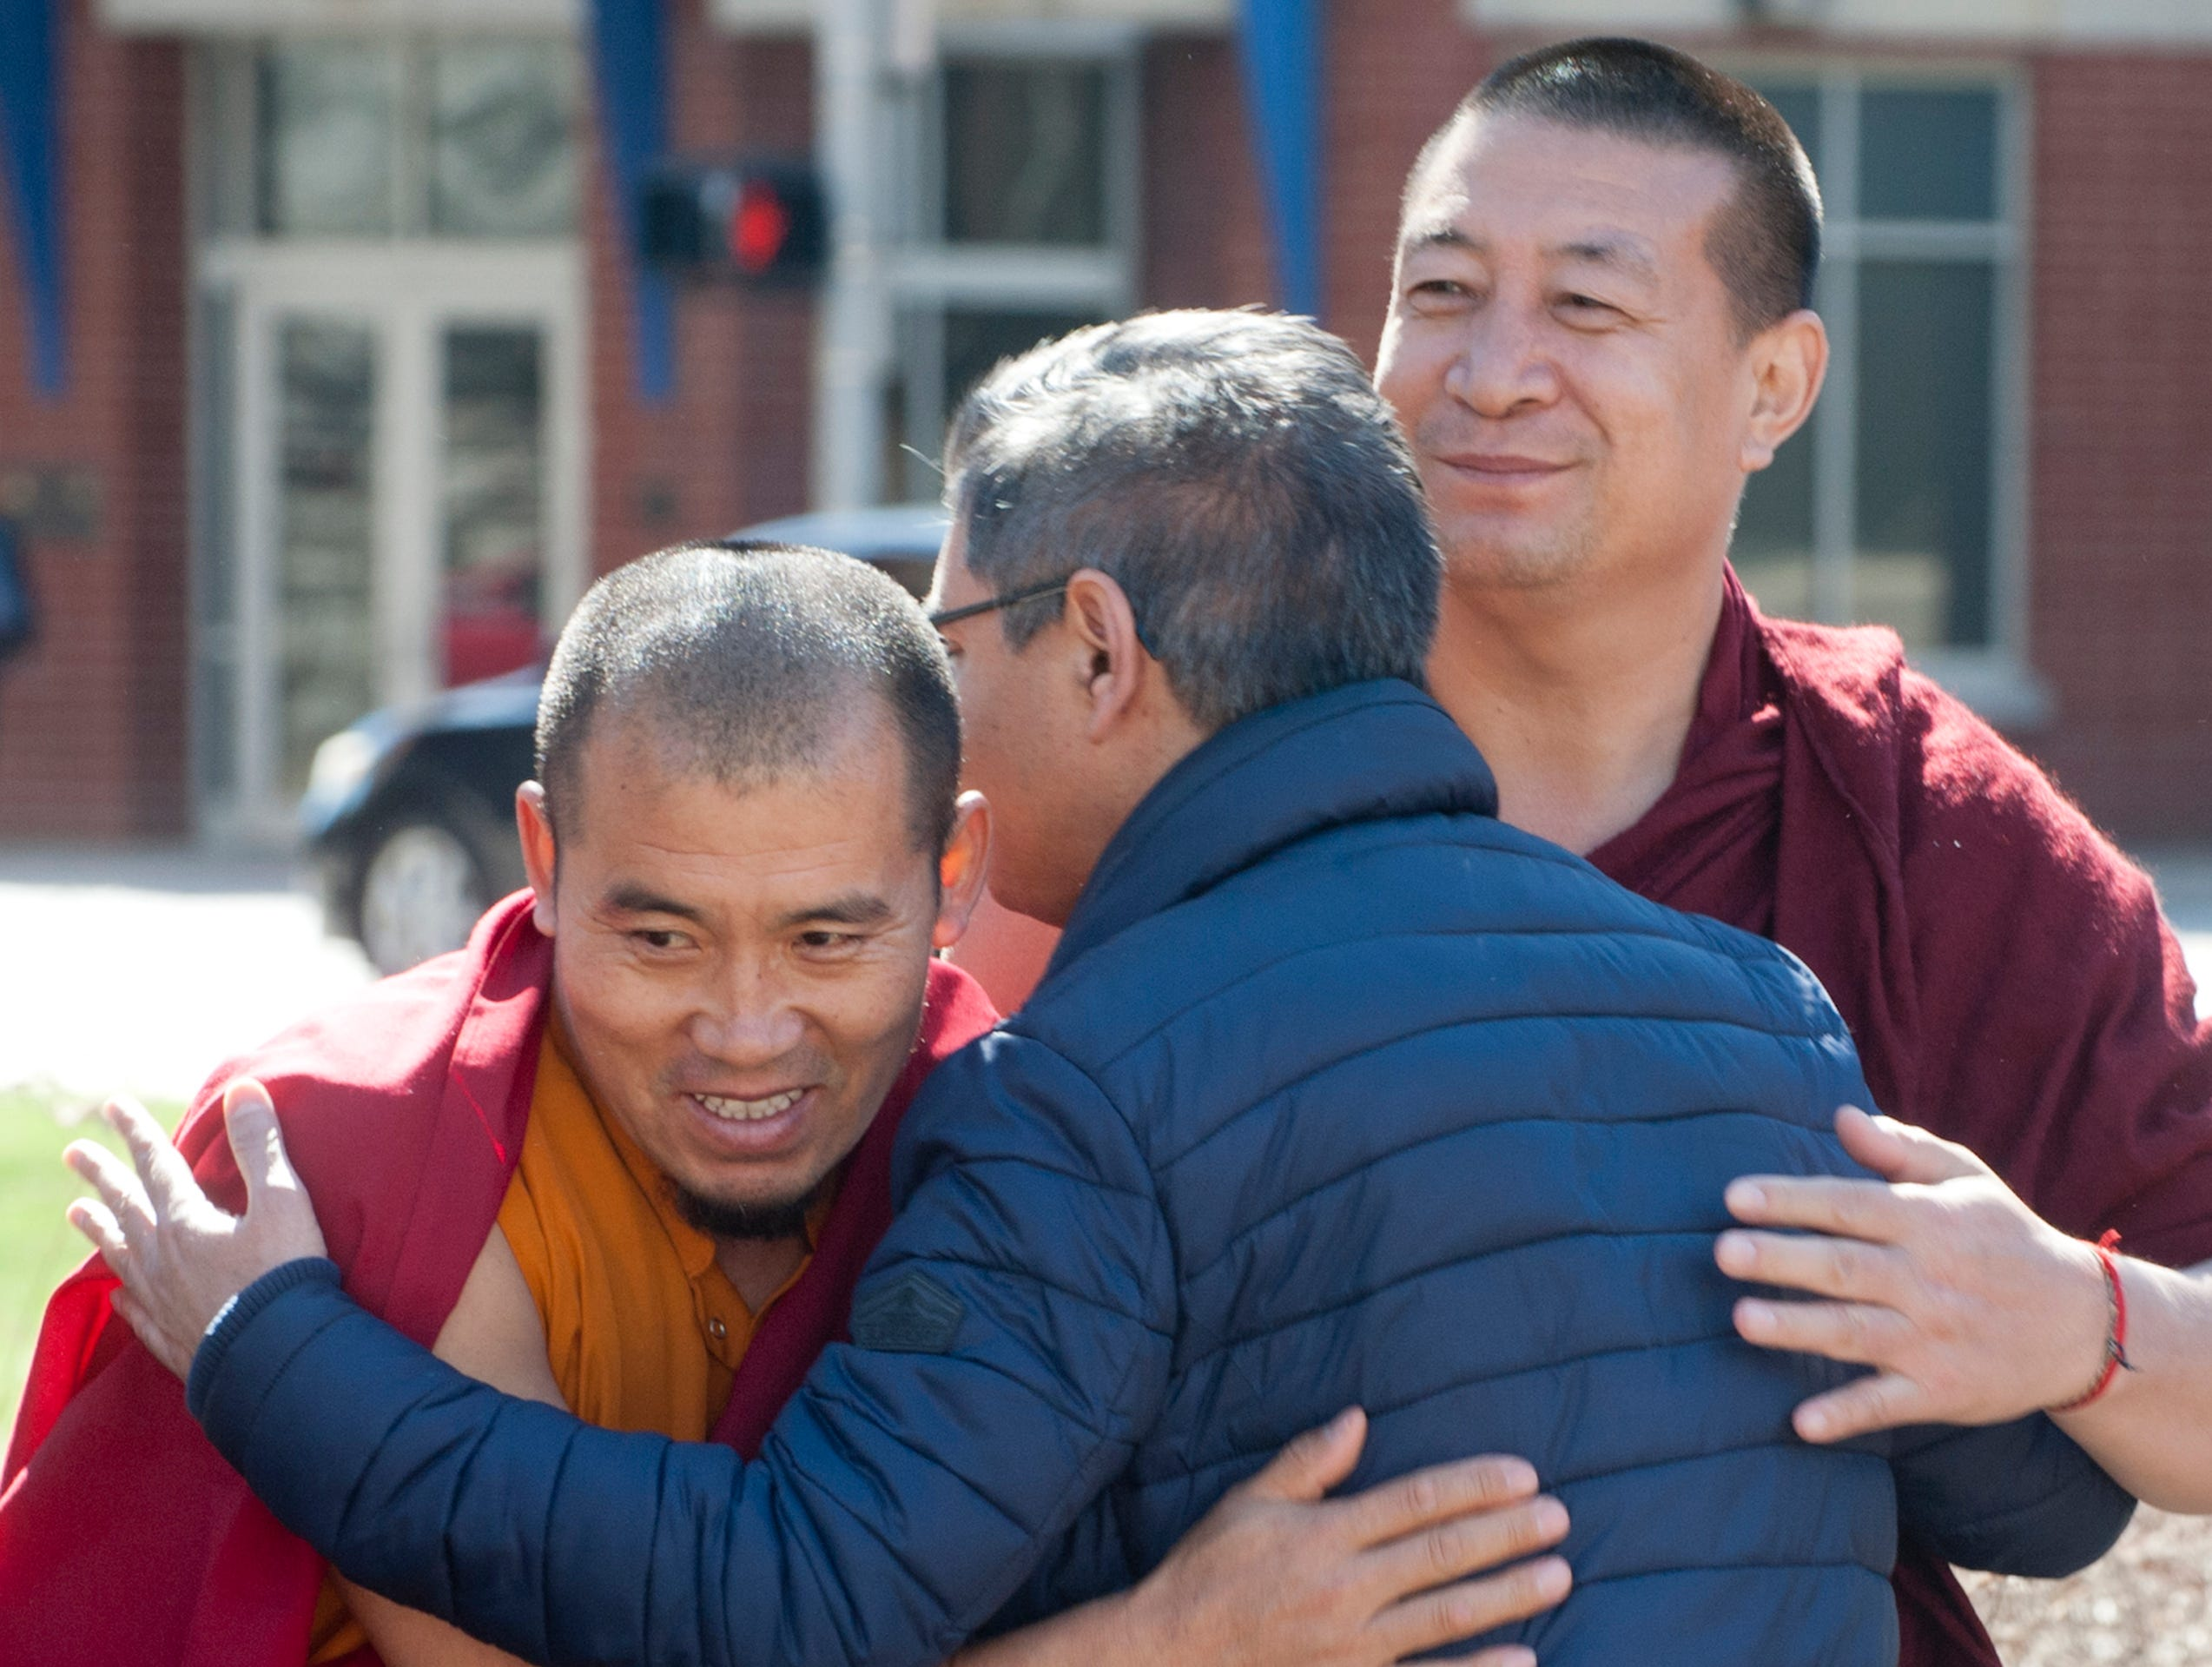 Muslim Americans For Compassion (of Louisville) President Muhammad Babar is hugged by Geshe Sonam, left, and Geshe Gedun, right, Tibetan Buddhist members of the Drepung Gomang Center for Engaging Compassion in St. Matthews, 16 March 2019